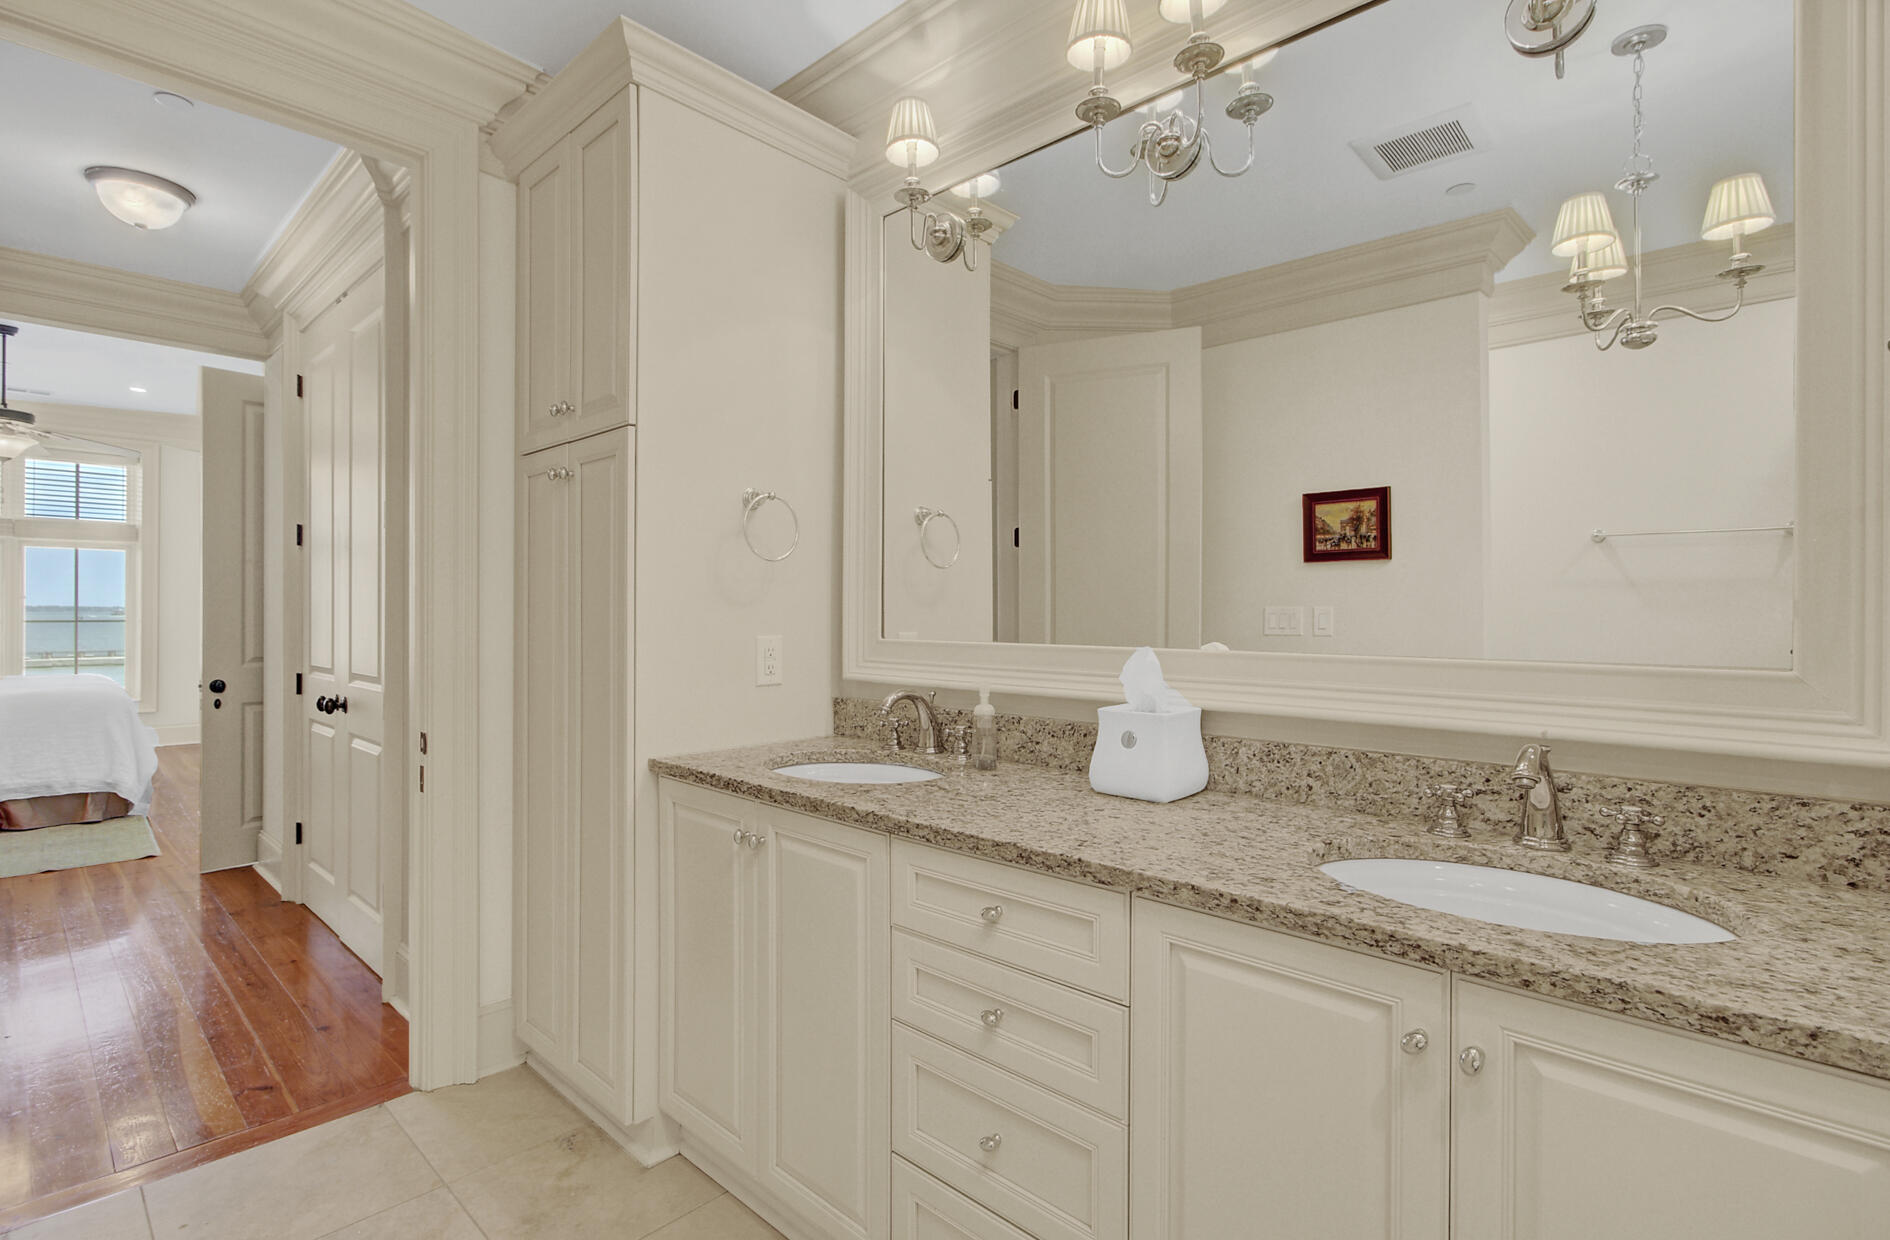 French Quarter Homes For Sale - 175 Concord, Charleston, SC - 43